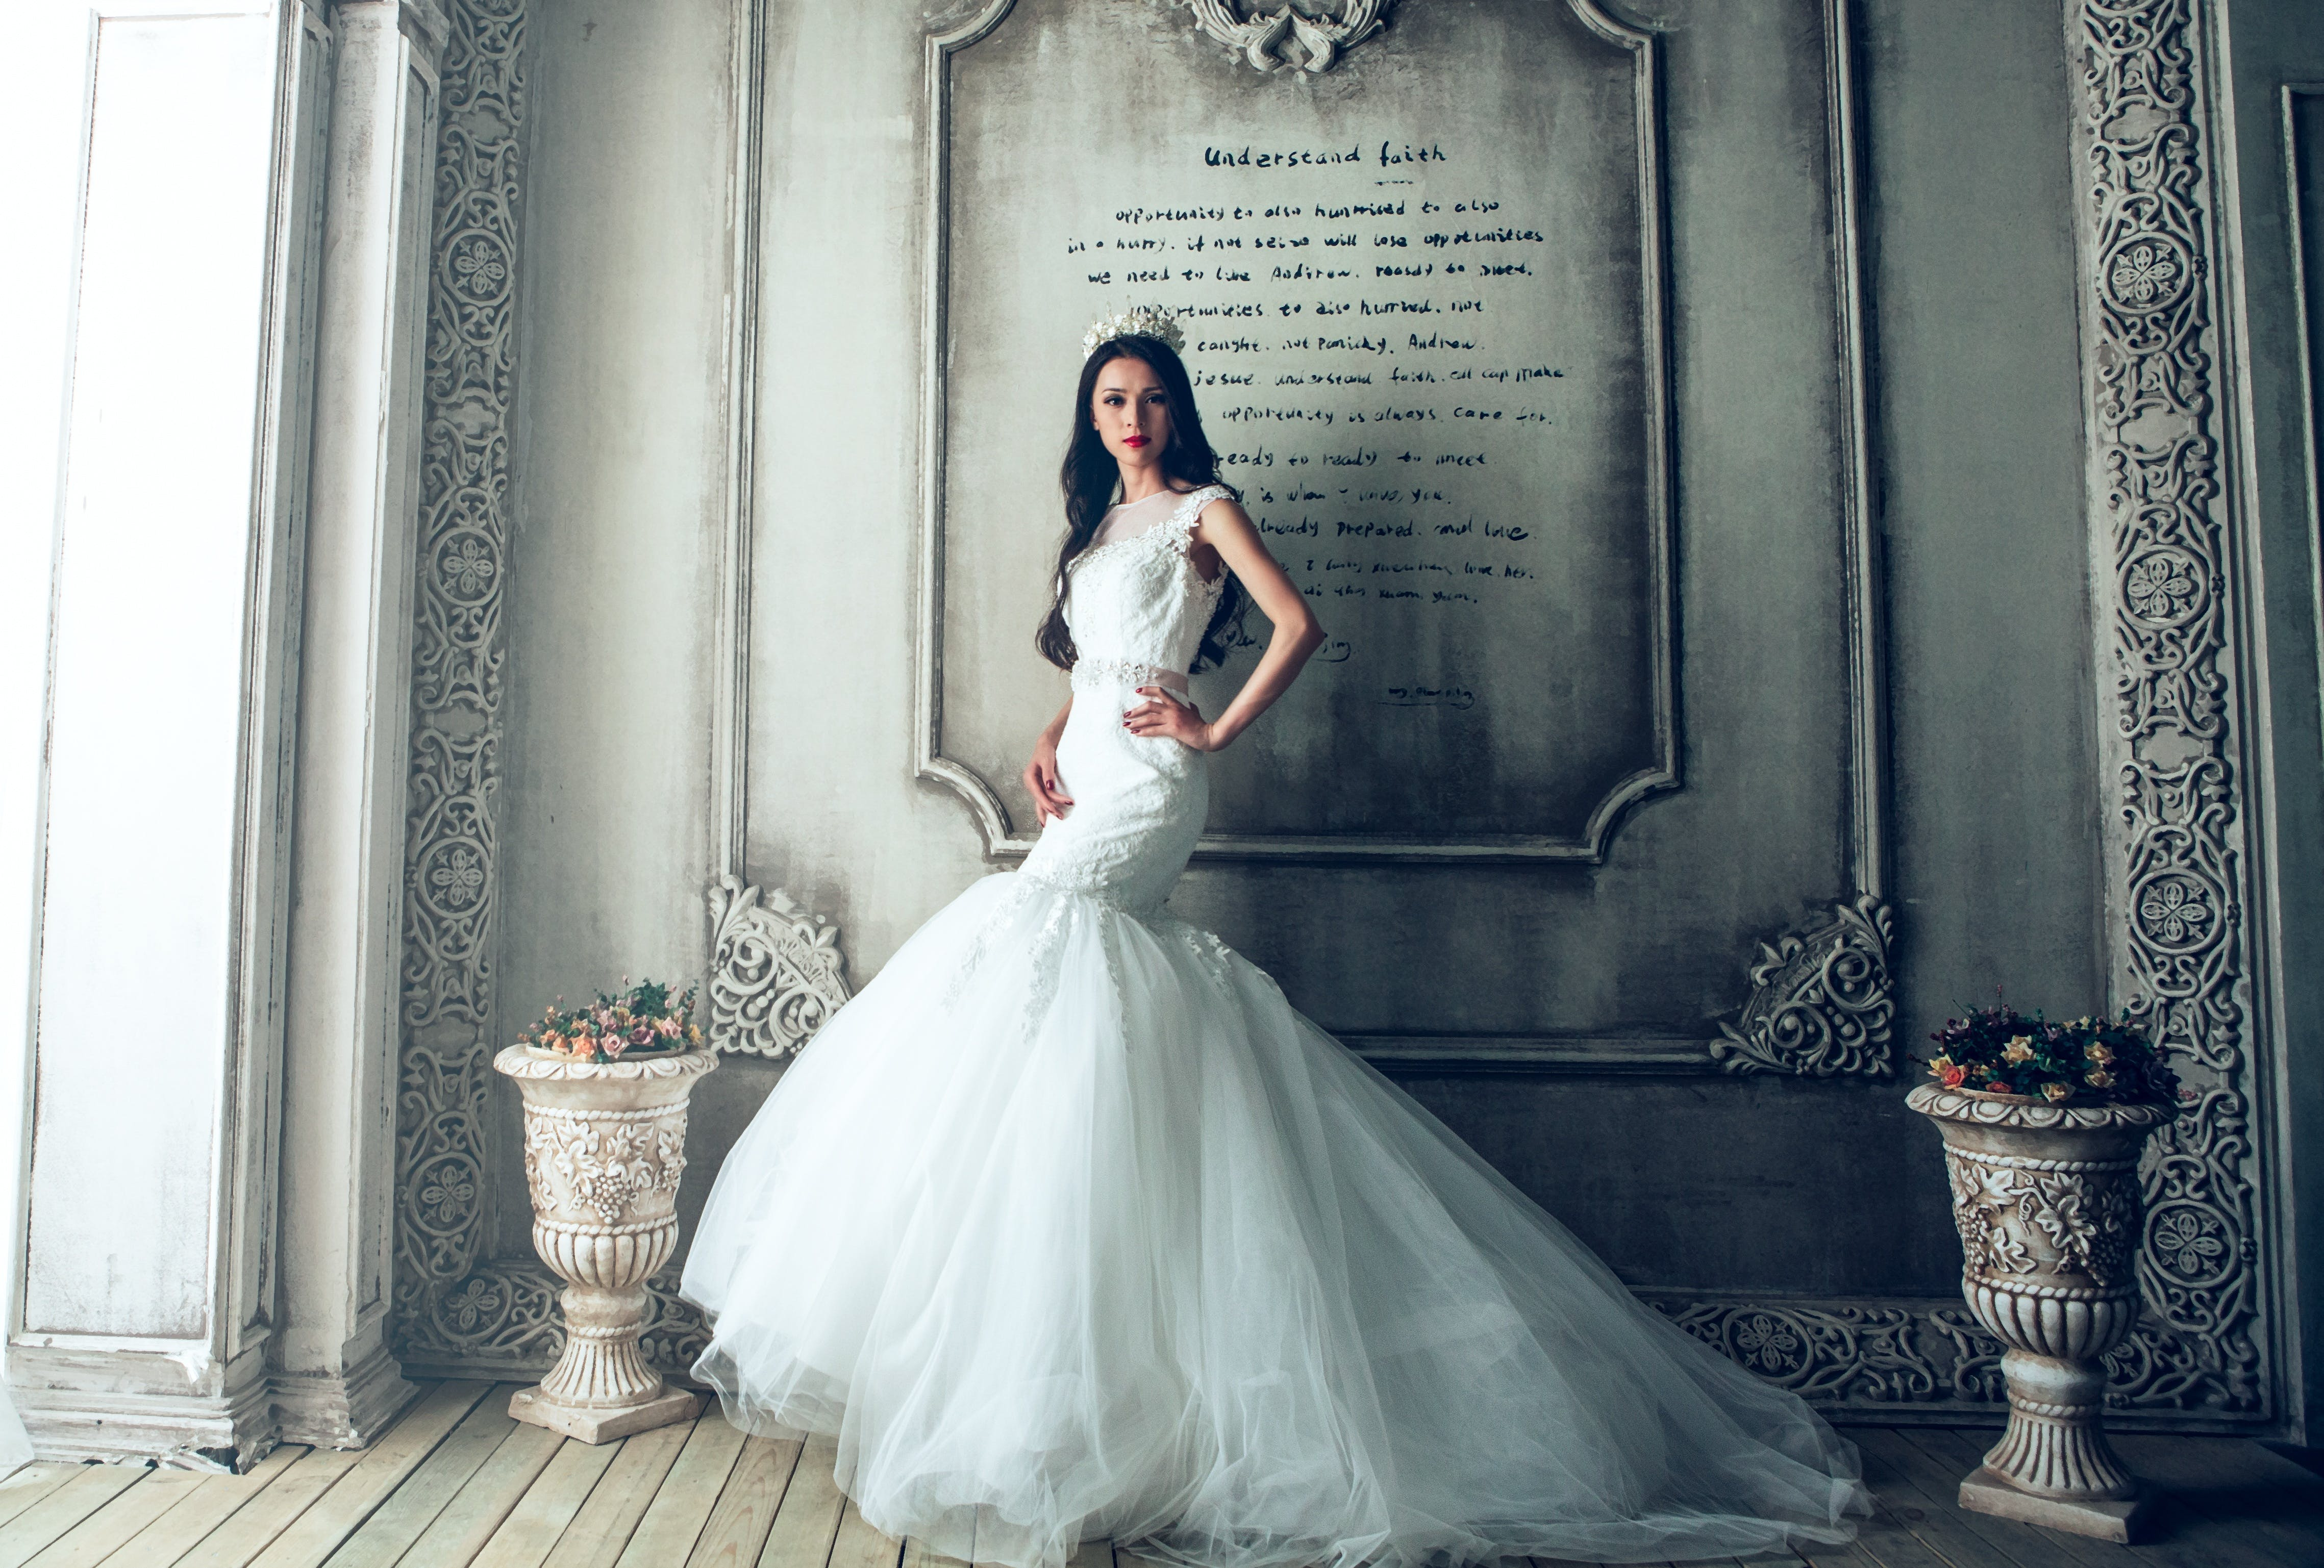 Woman Wearing White Wedding Gown Standing Beside Gray-painted Wall